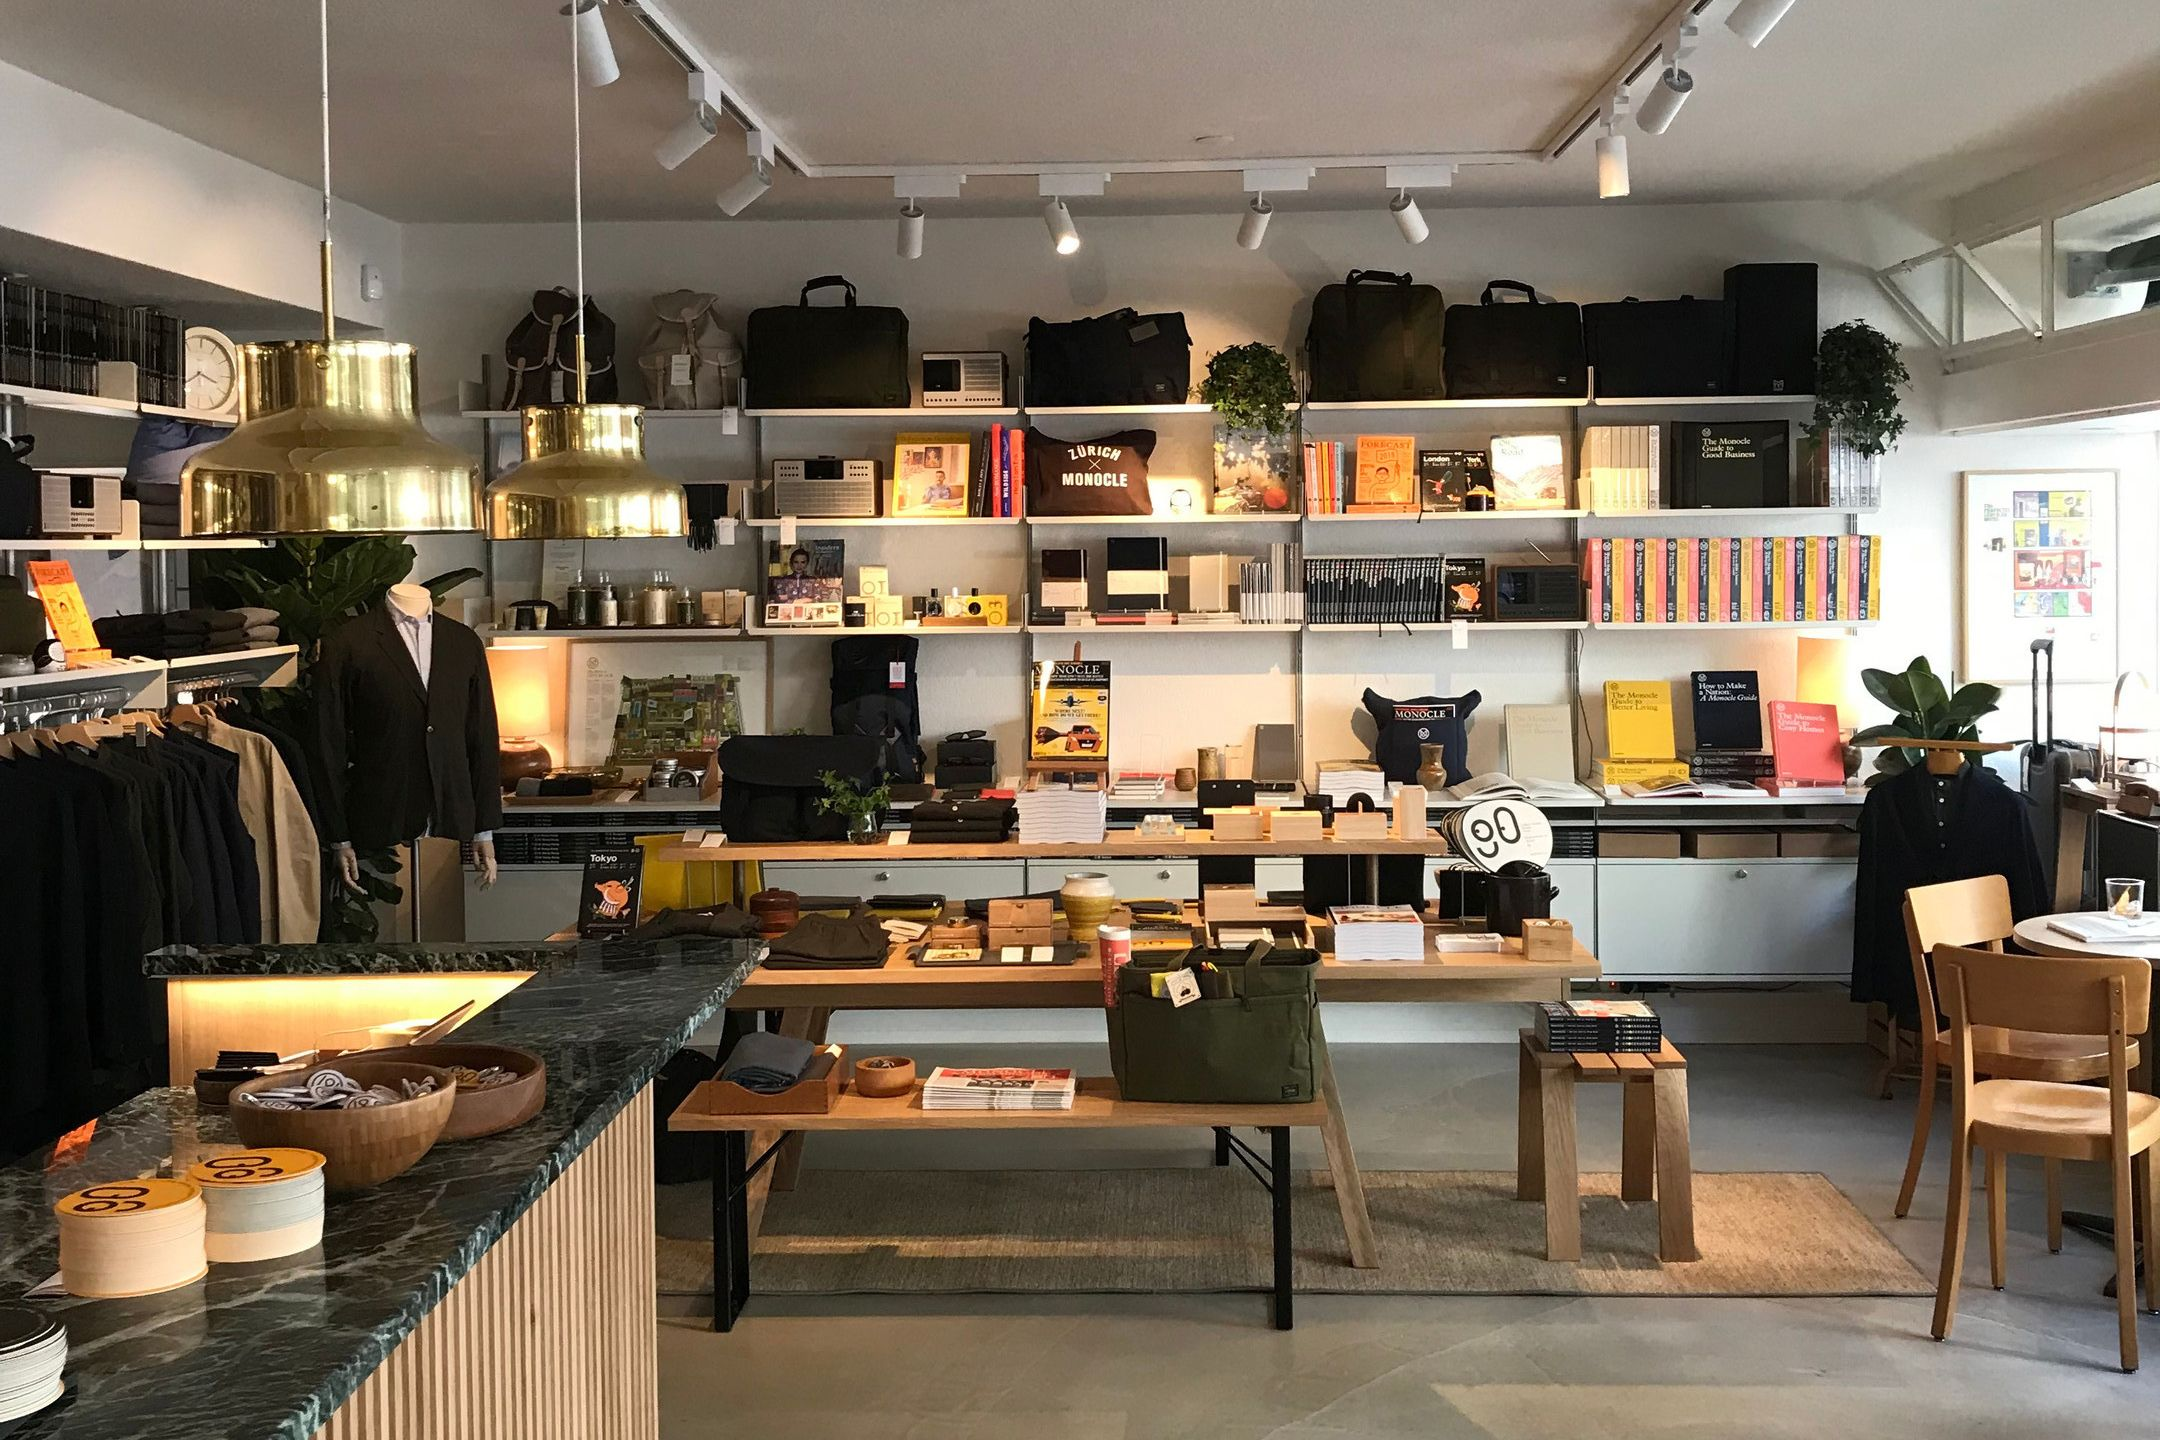 The 606 Universal Shelving System At The Monocle Shop Cafe In Zurich Find More Places To See Vitsœ Nea School Interior Retail Design Newbury Street Boston